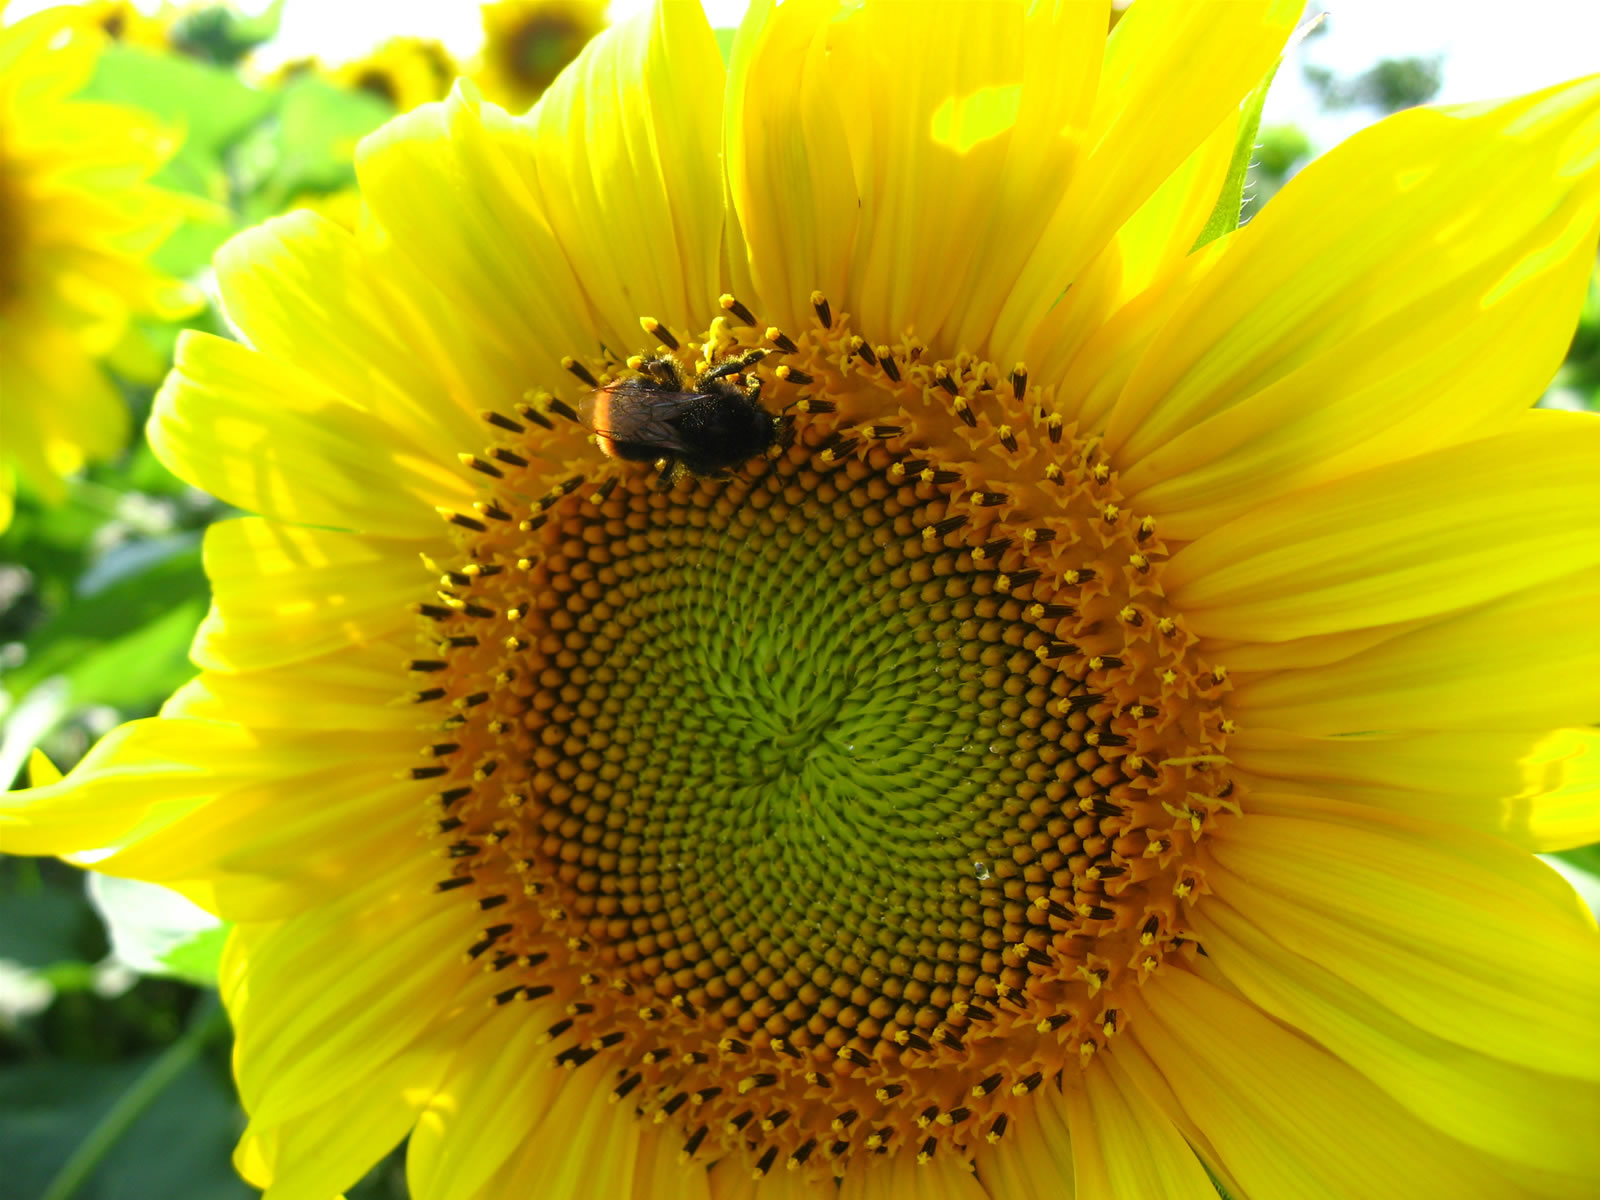 Sun Flower and Bumble bee